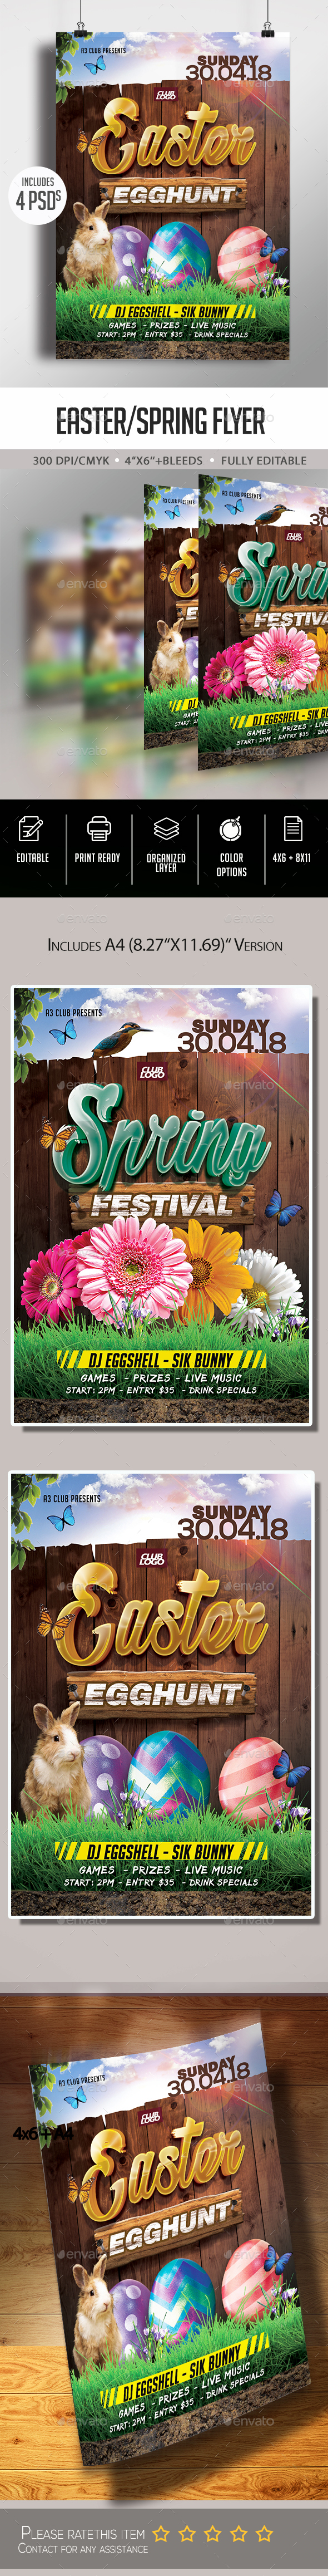 Flyers PSD – Easter/Spring Flyer – Download